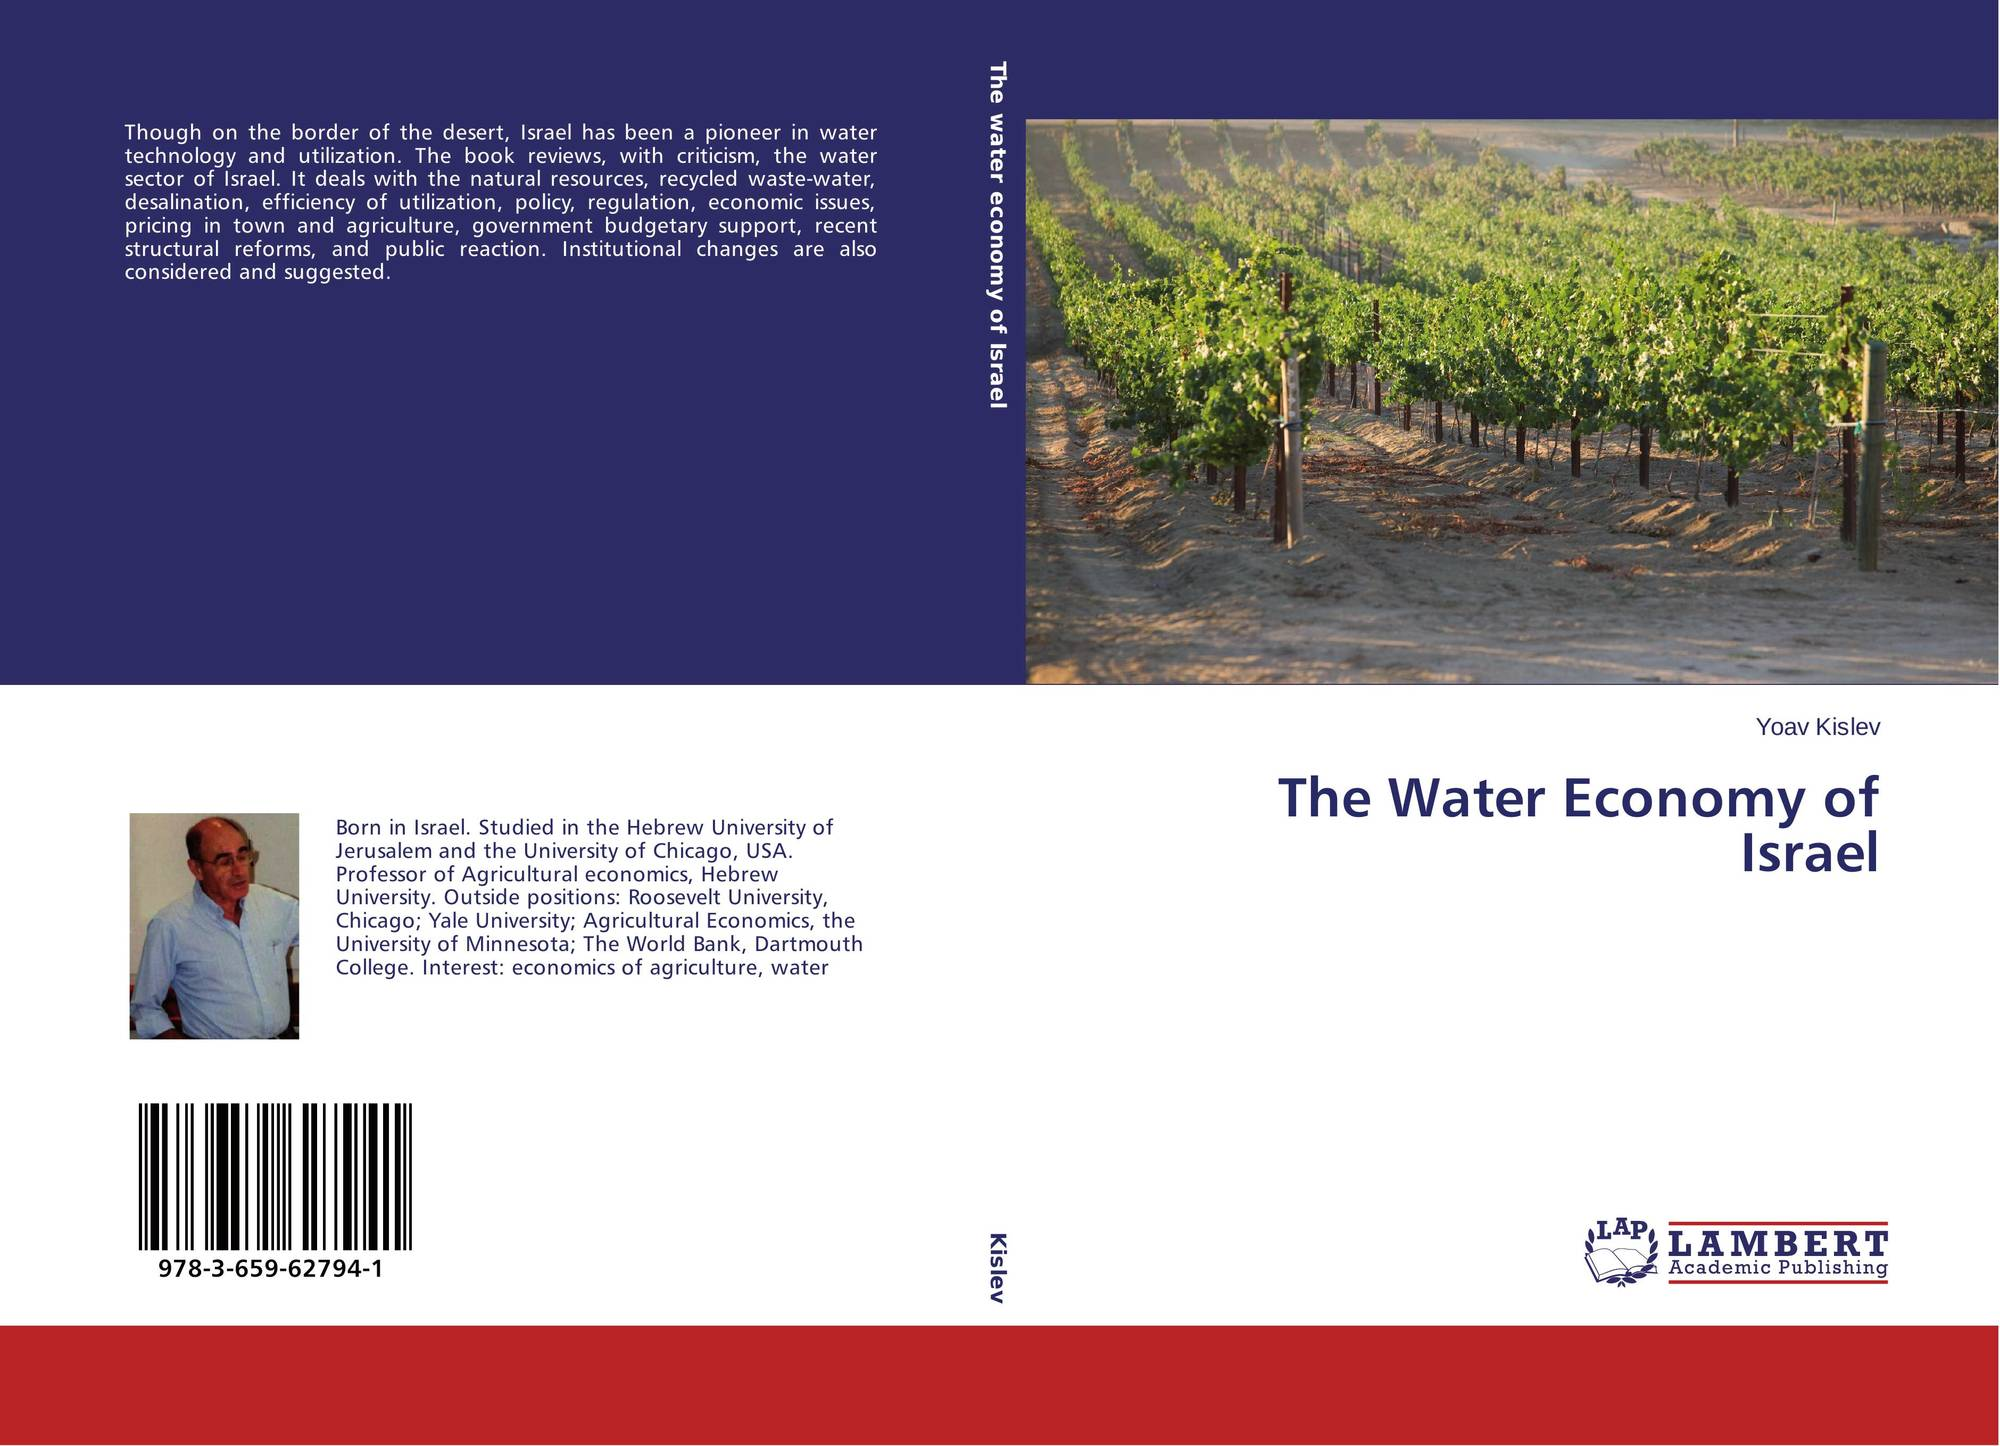 The Water Economy of Israel 978 3 659 1